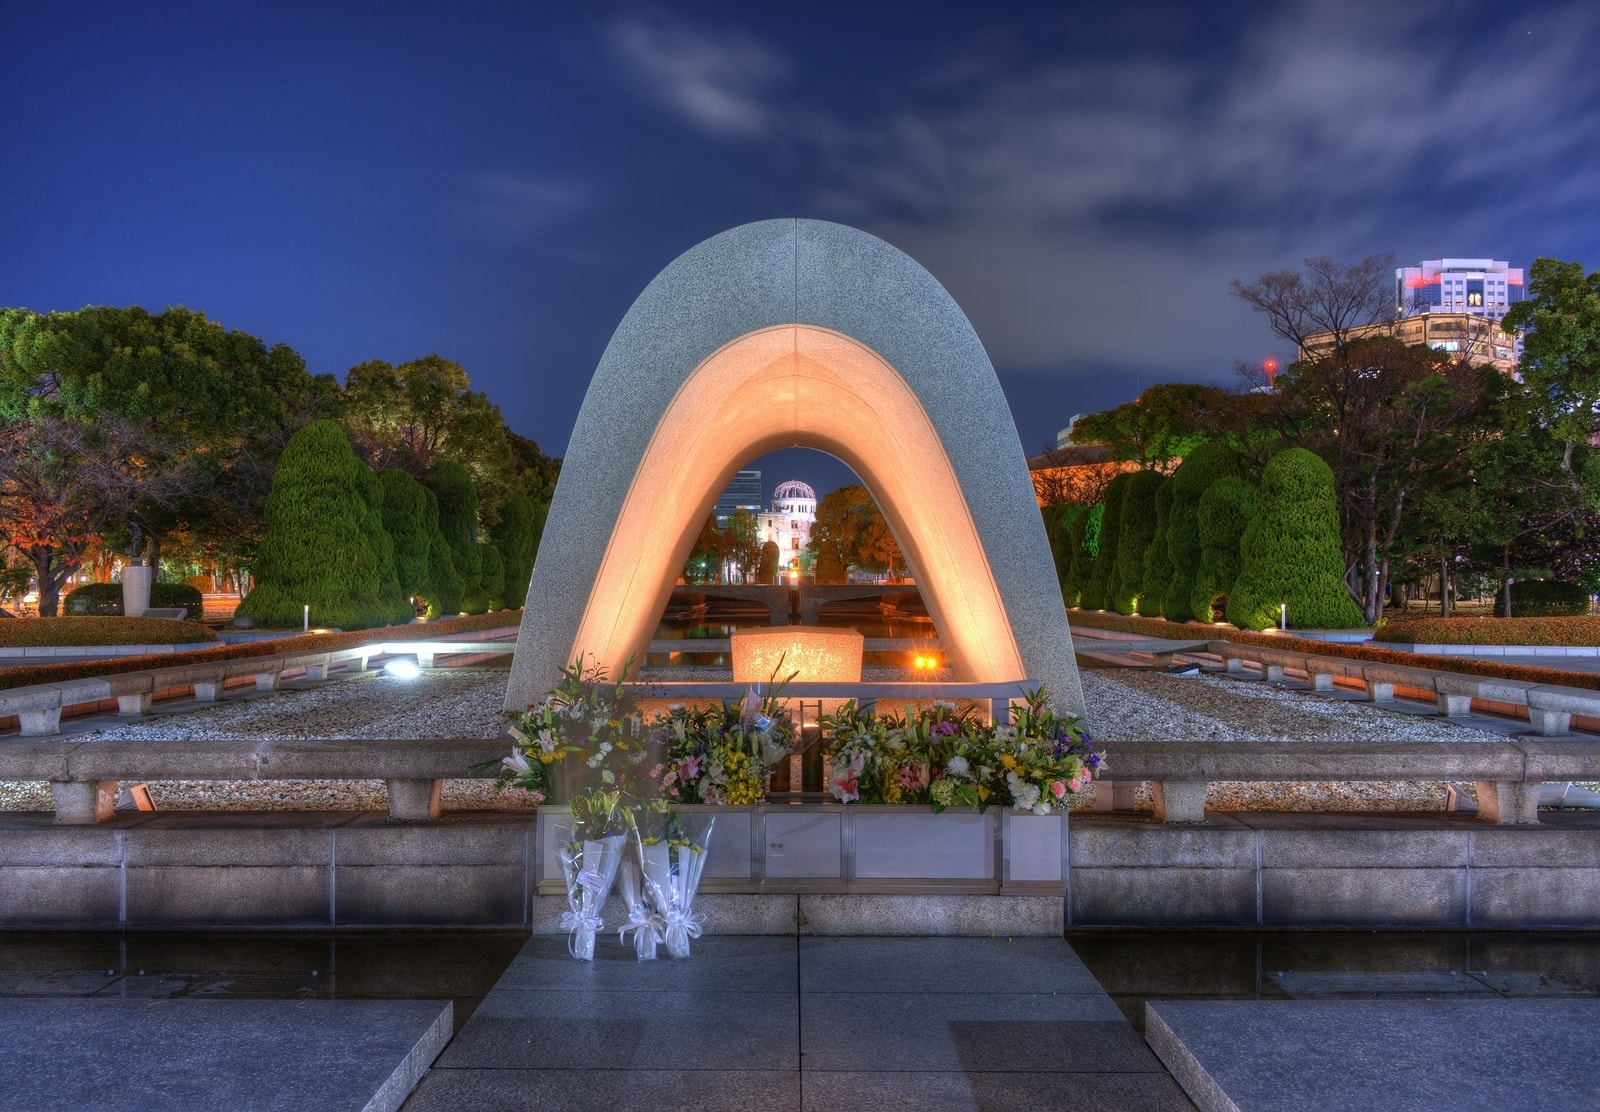 Cenotaph through which the Atomic Dome can be seen at at Peace Memorial Park in Hiroshima, Japan